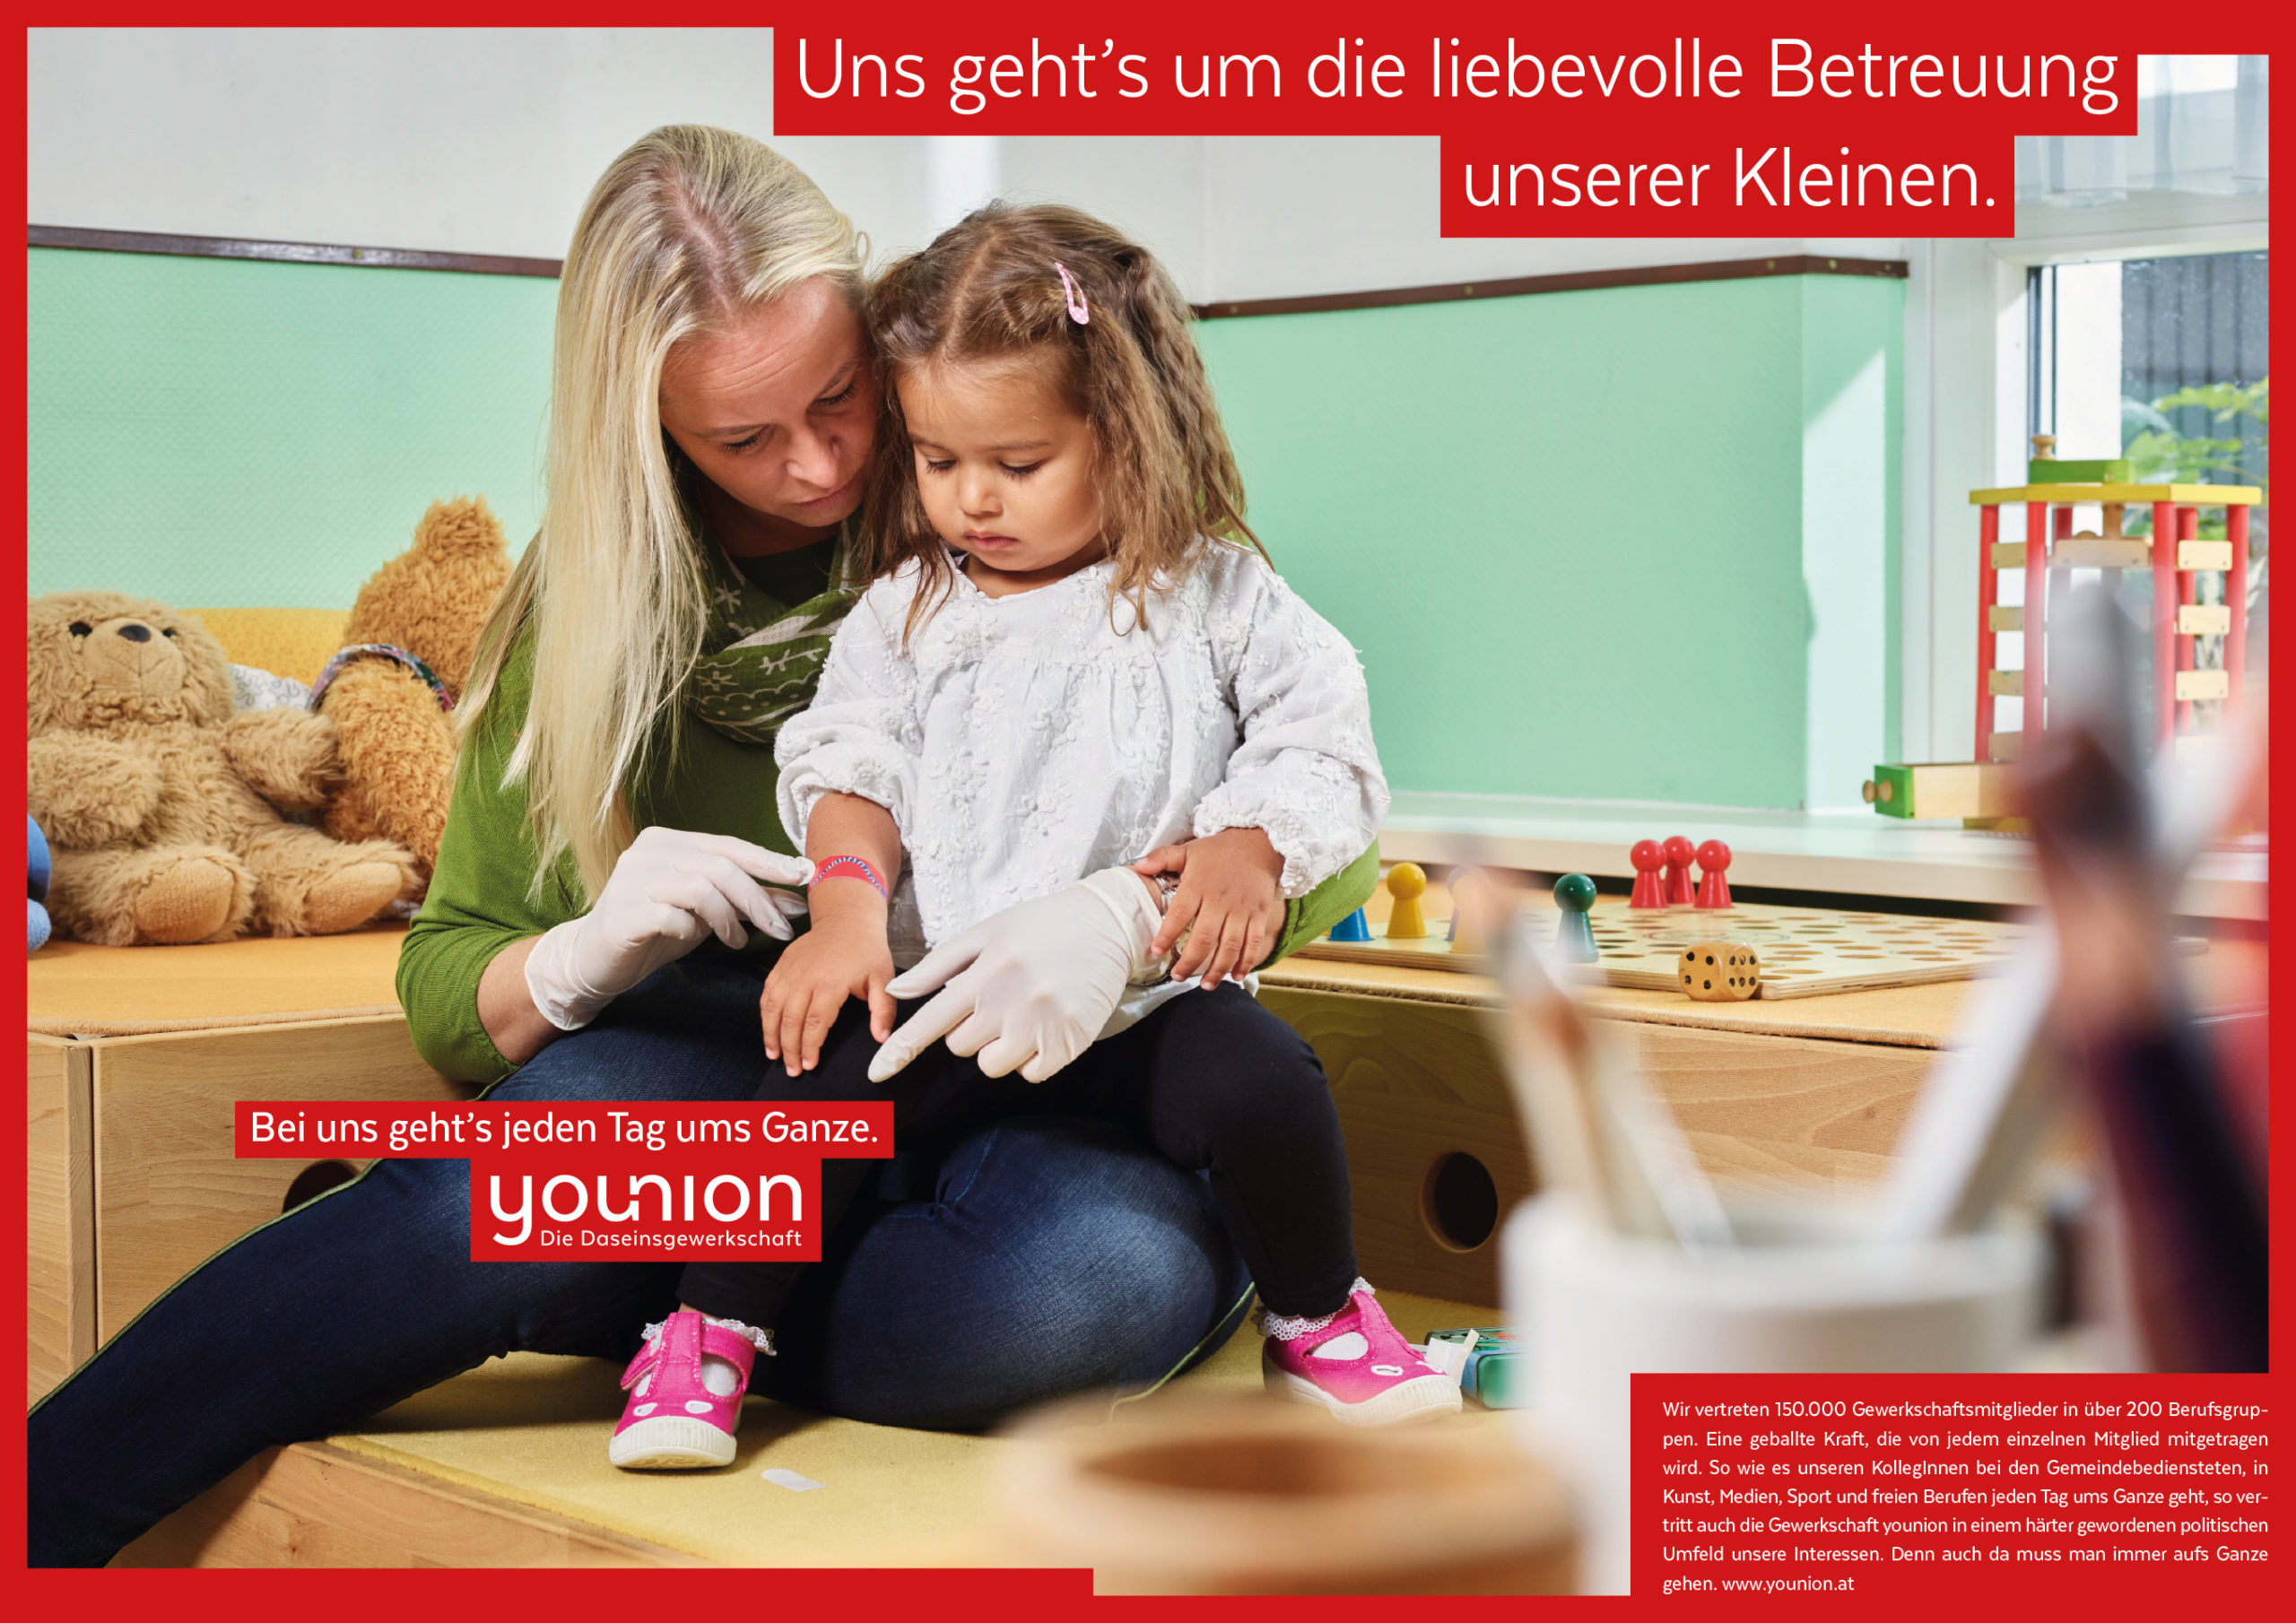 Younion-Kampagne-Sujet-4-scaled.jpg